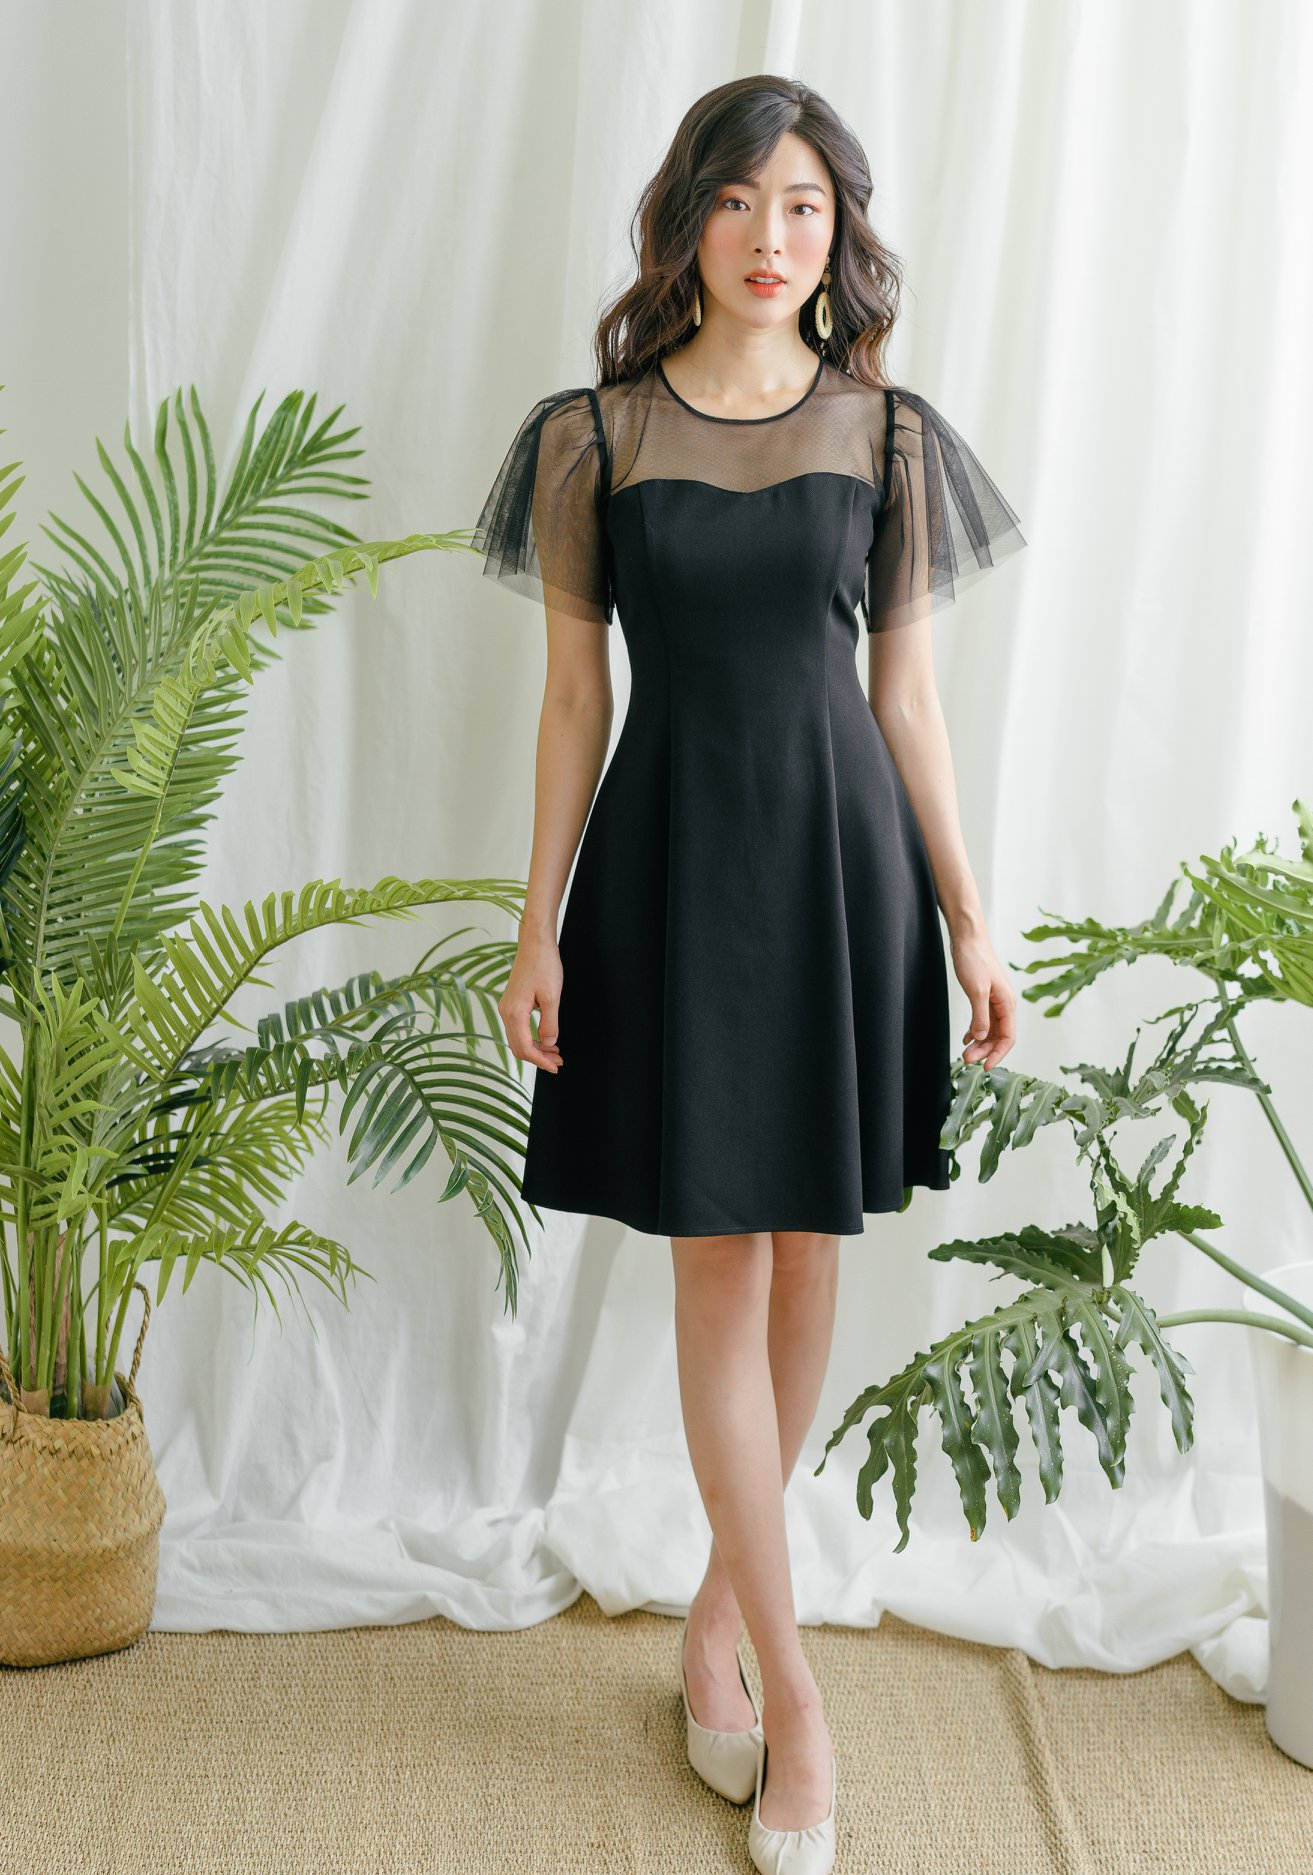 MIKI FOR WOMAN – DRESS COLLECTION